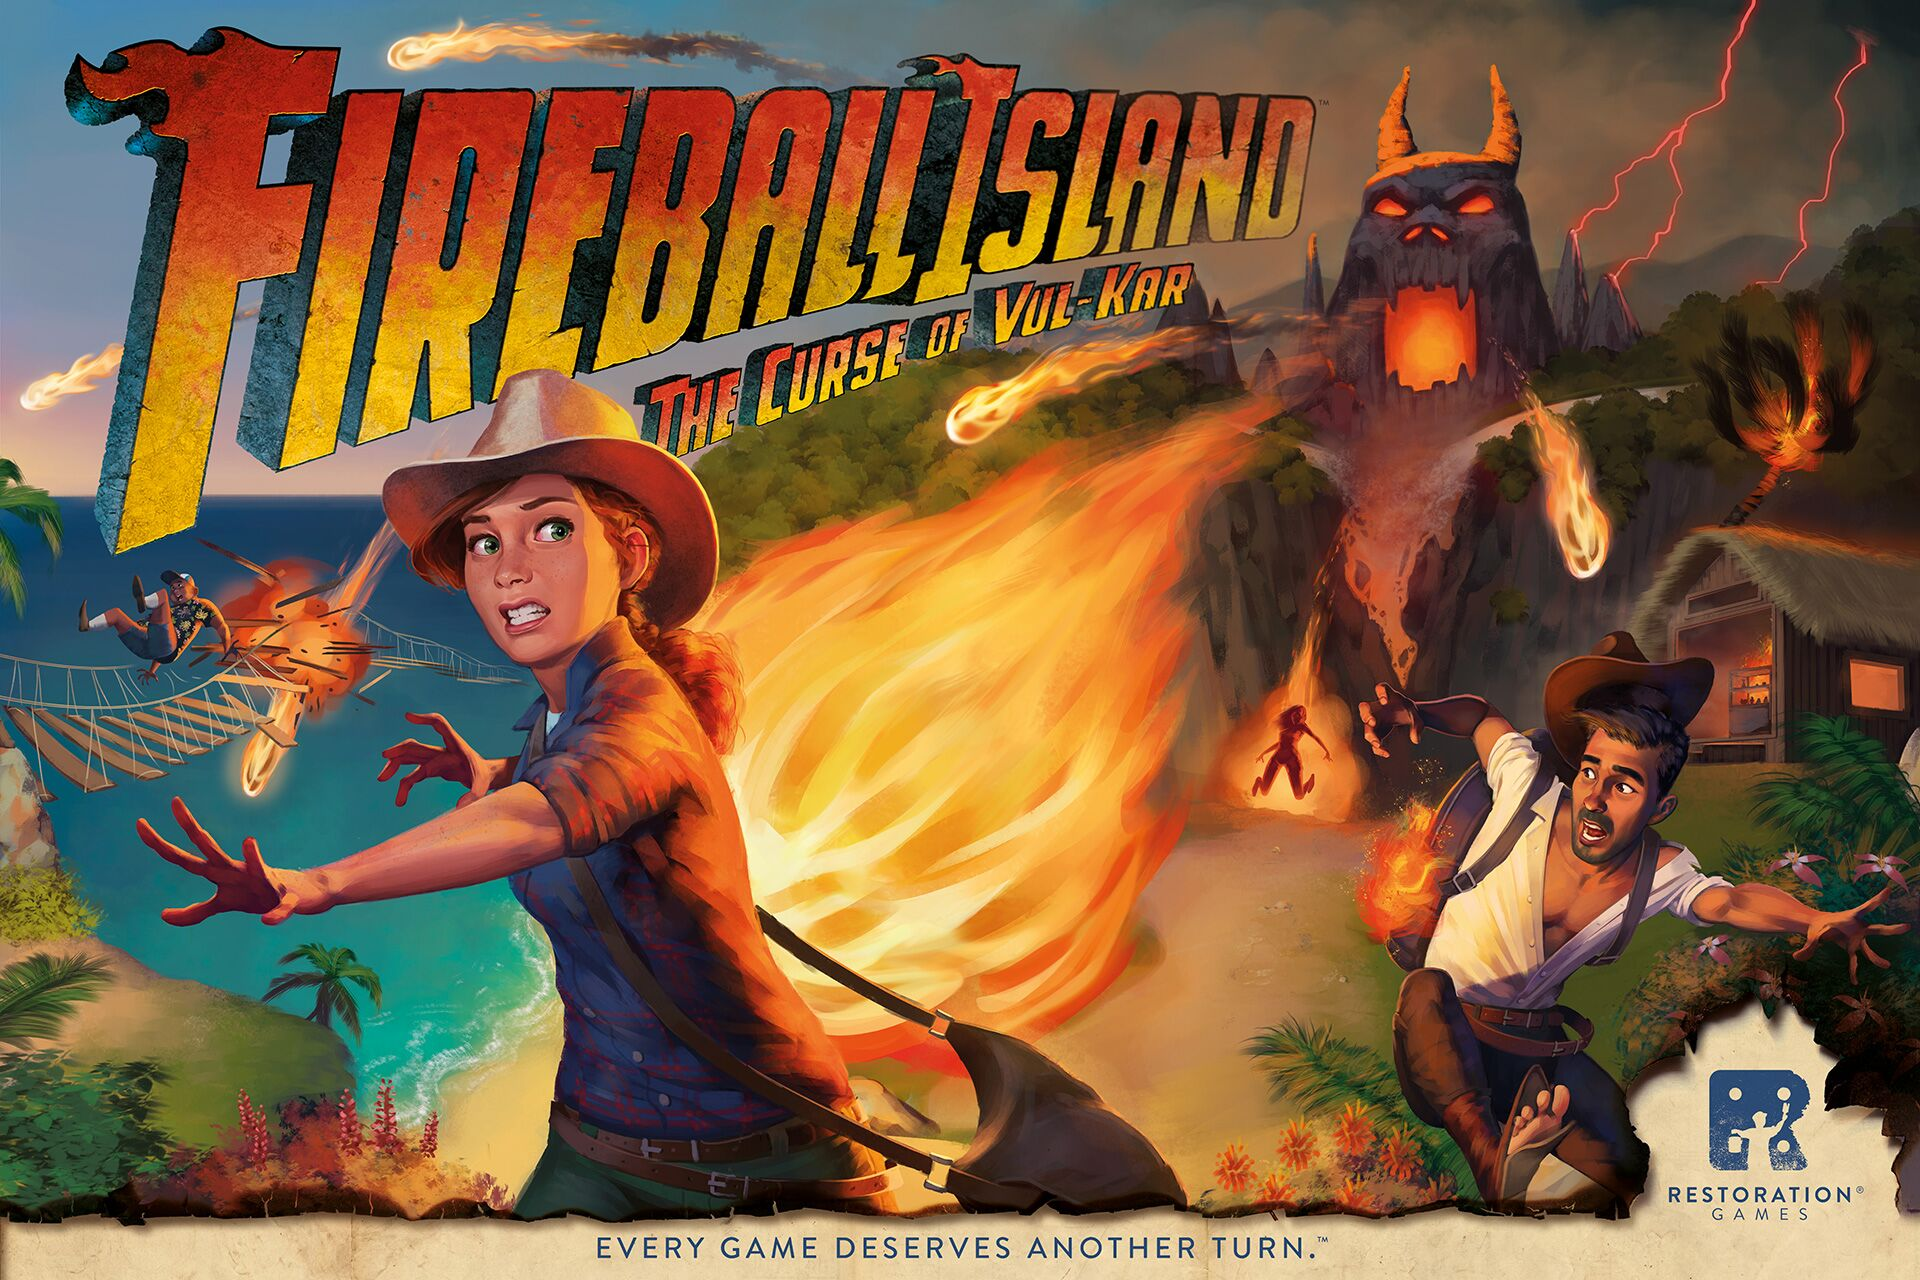 Fireball_Island_Cover_preview